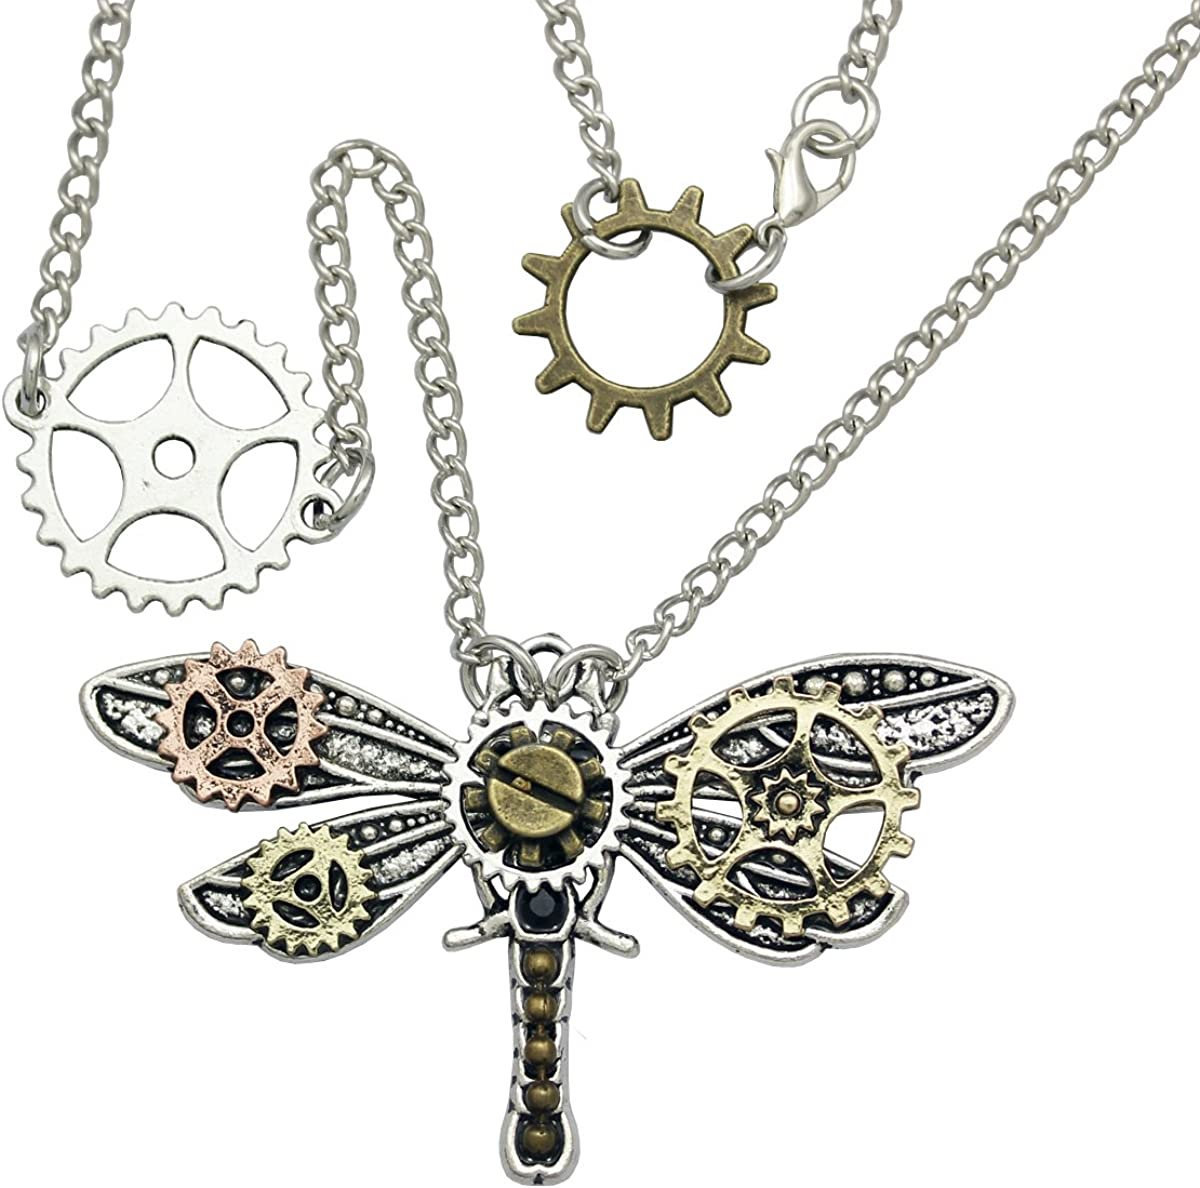 Antique Bronze Insect Art Xmas Gift Dragonfly Steampunk Clock Pendant Necklace